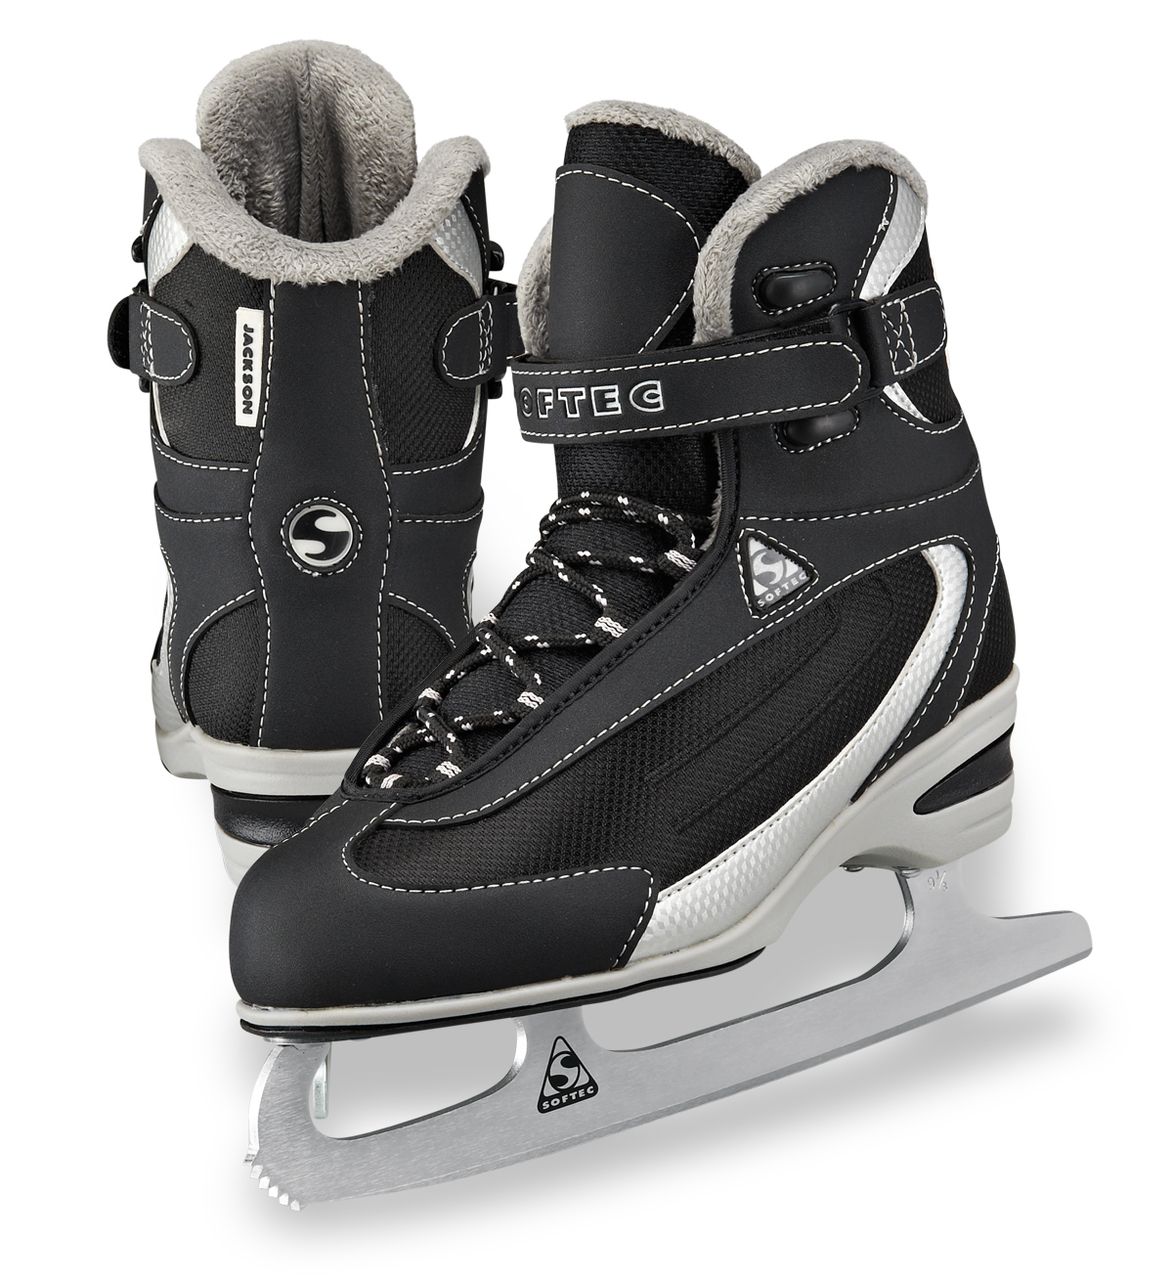 Figure Skates Softec Classic ST2300 by